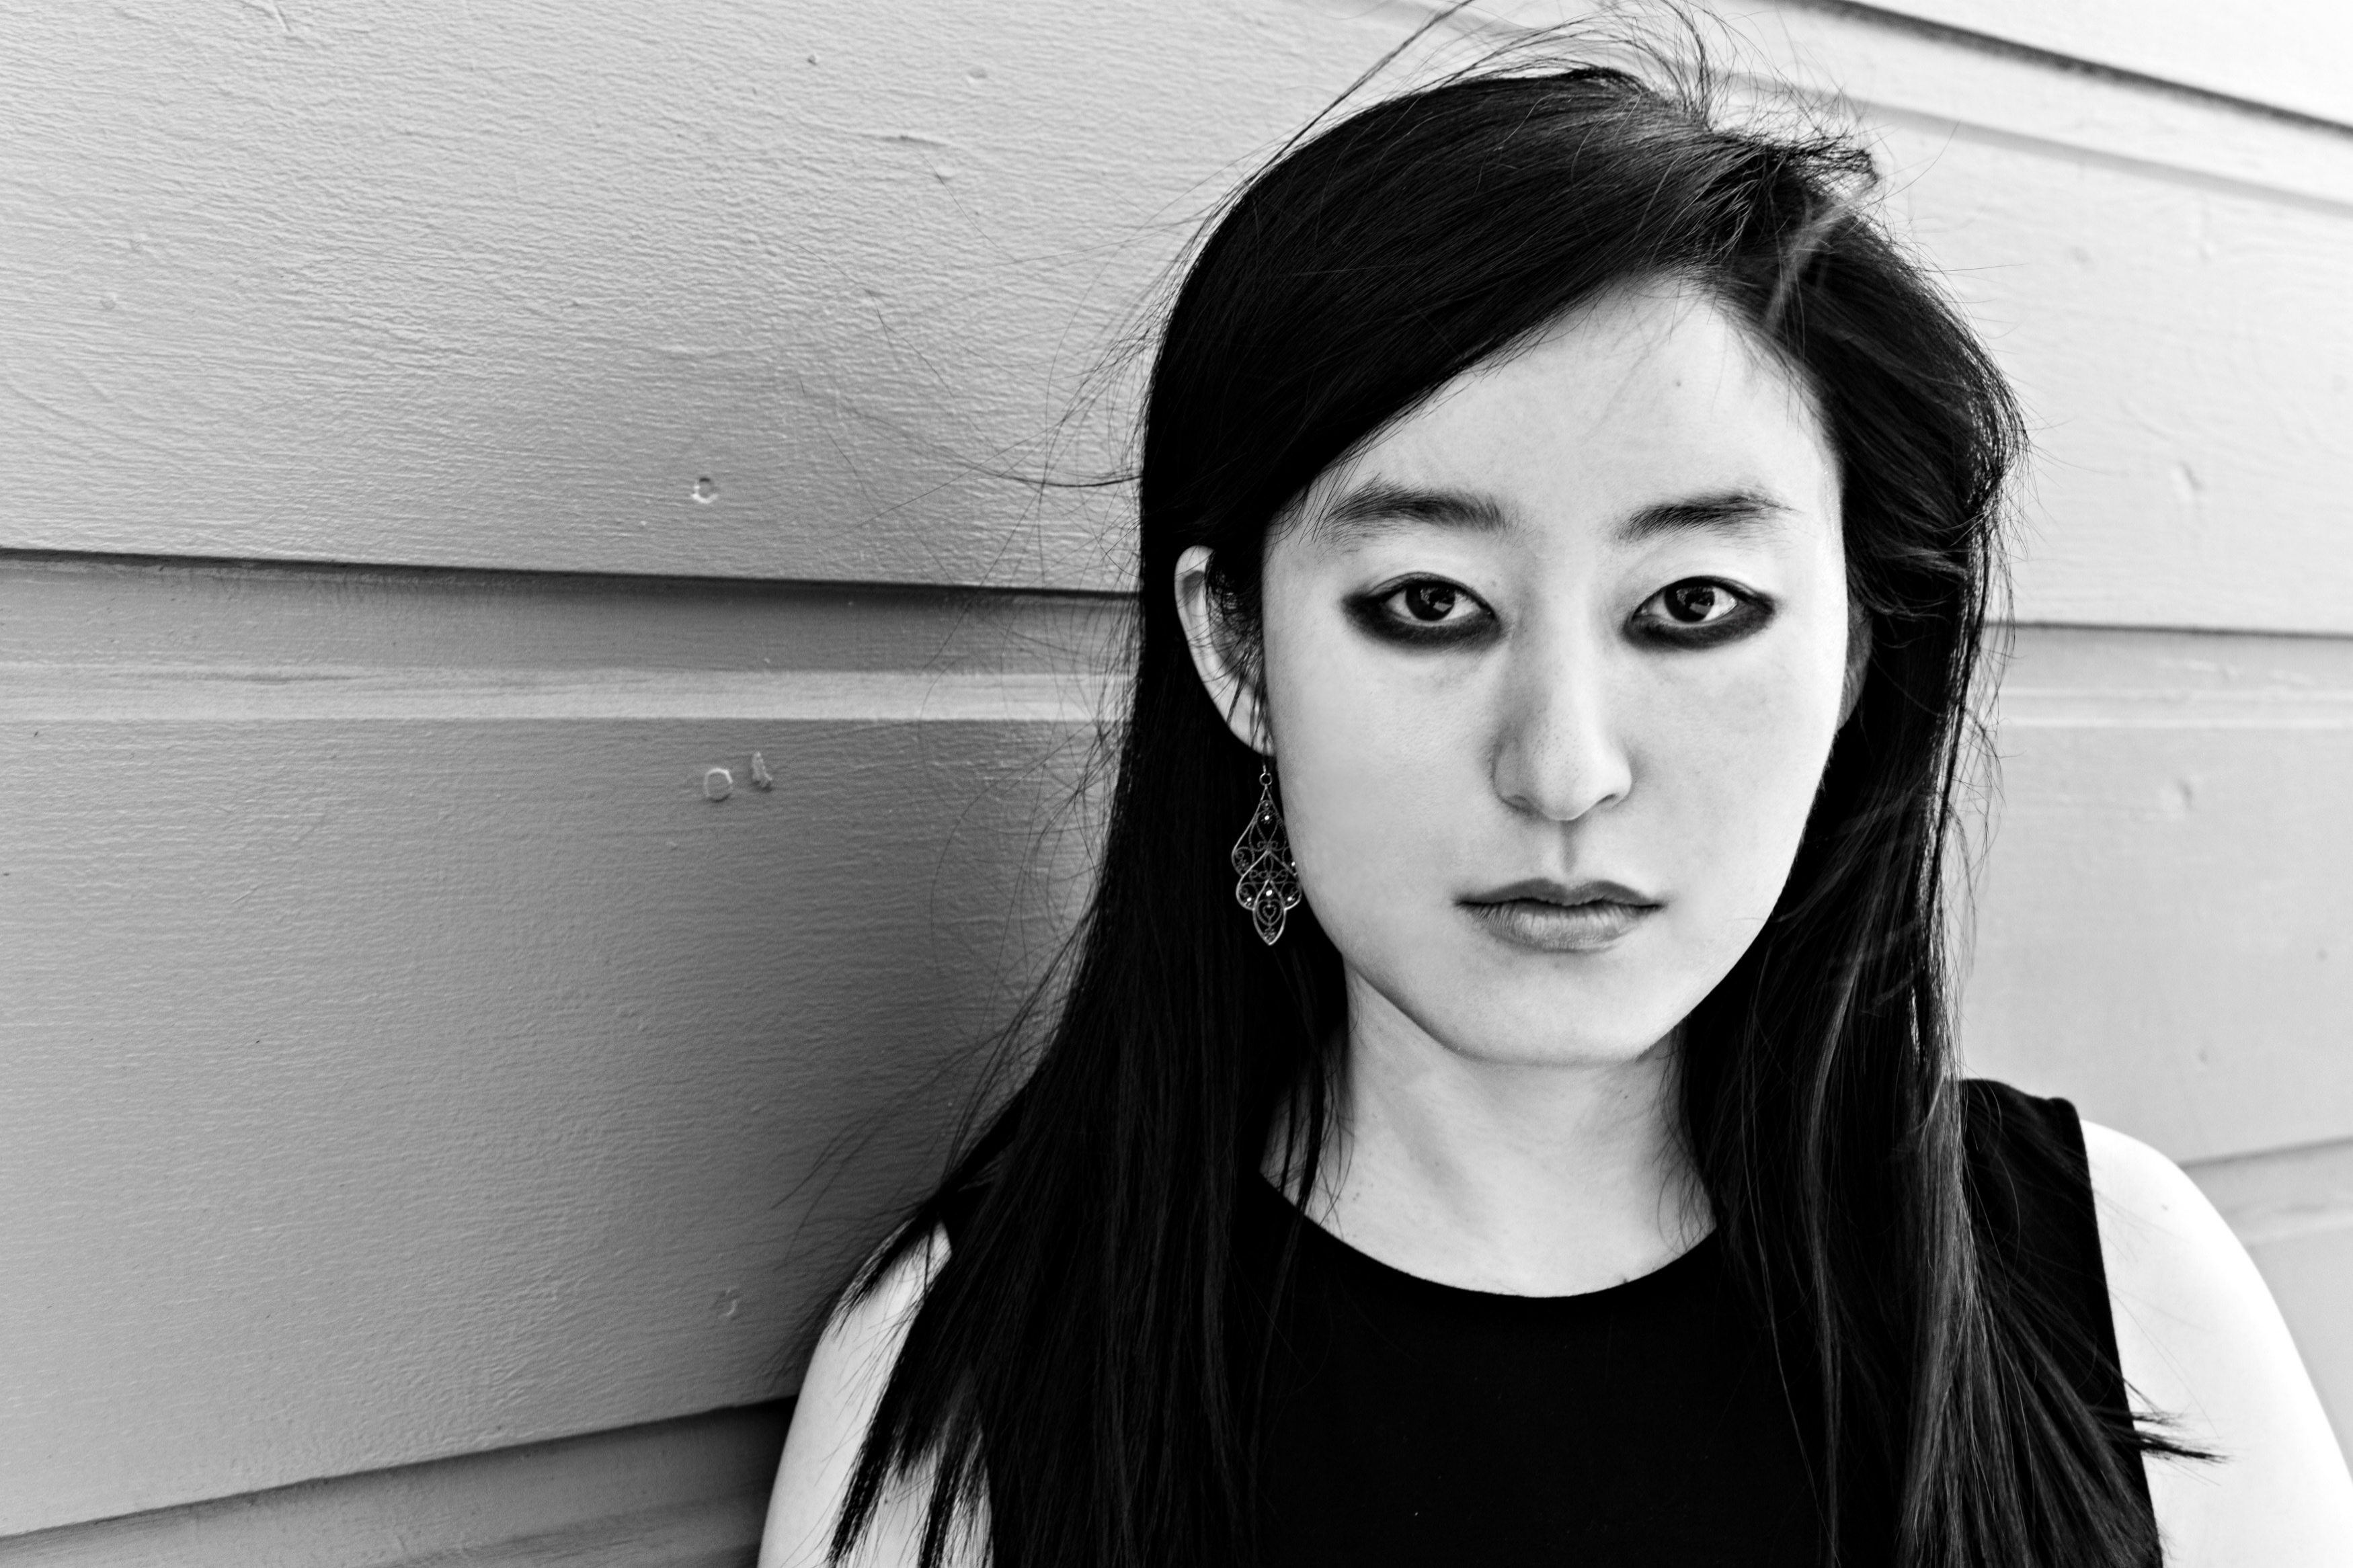 R.O. Kwon, Author and contributor to our #ClimateVisionaries Artists' Project